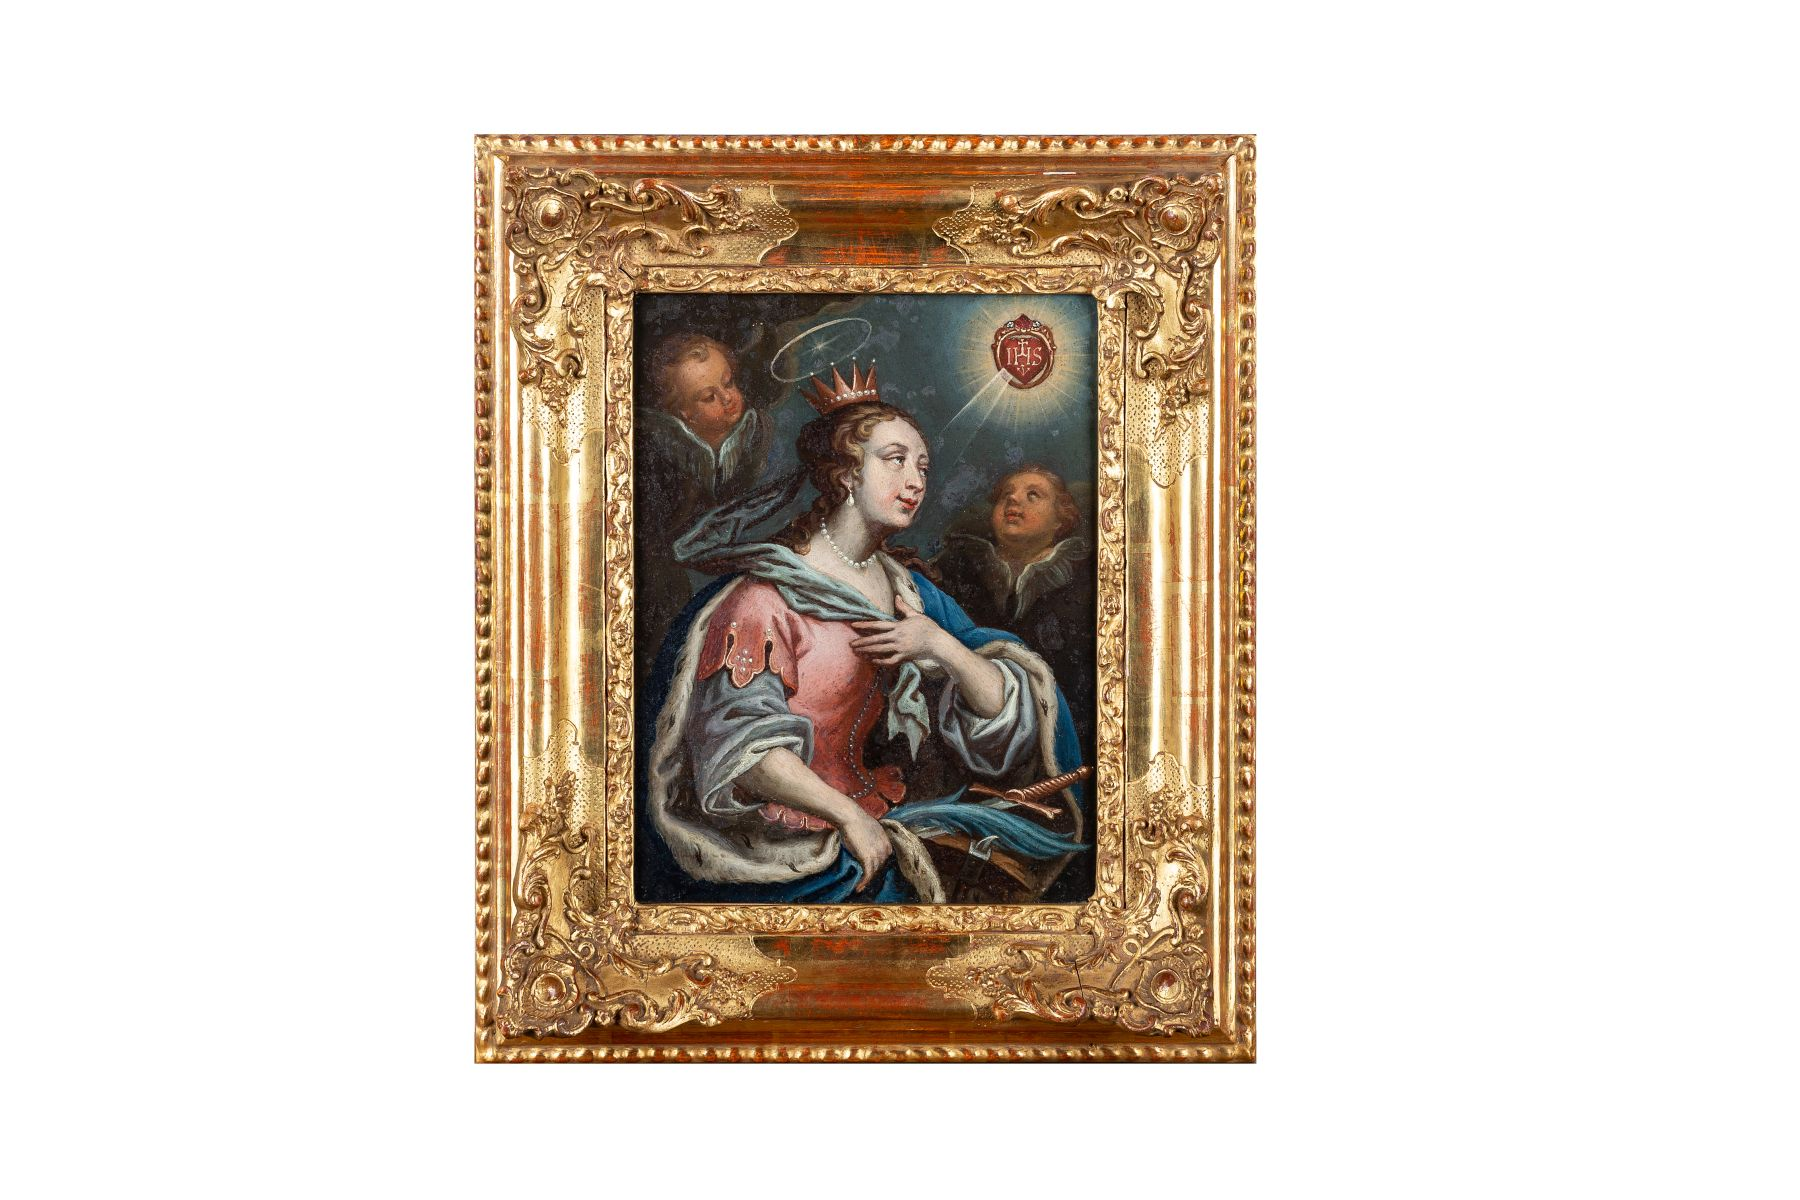 #43 Queen of Heaven wreathed by angels | Image